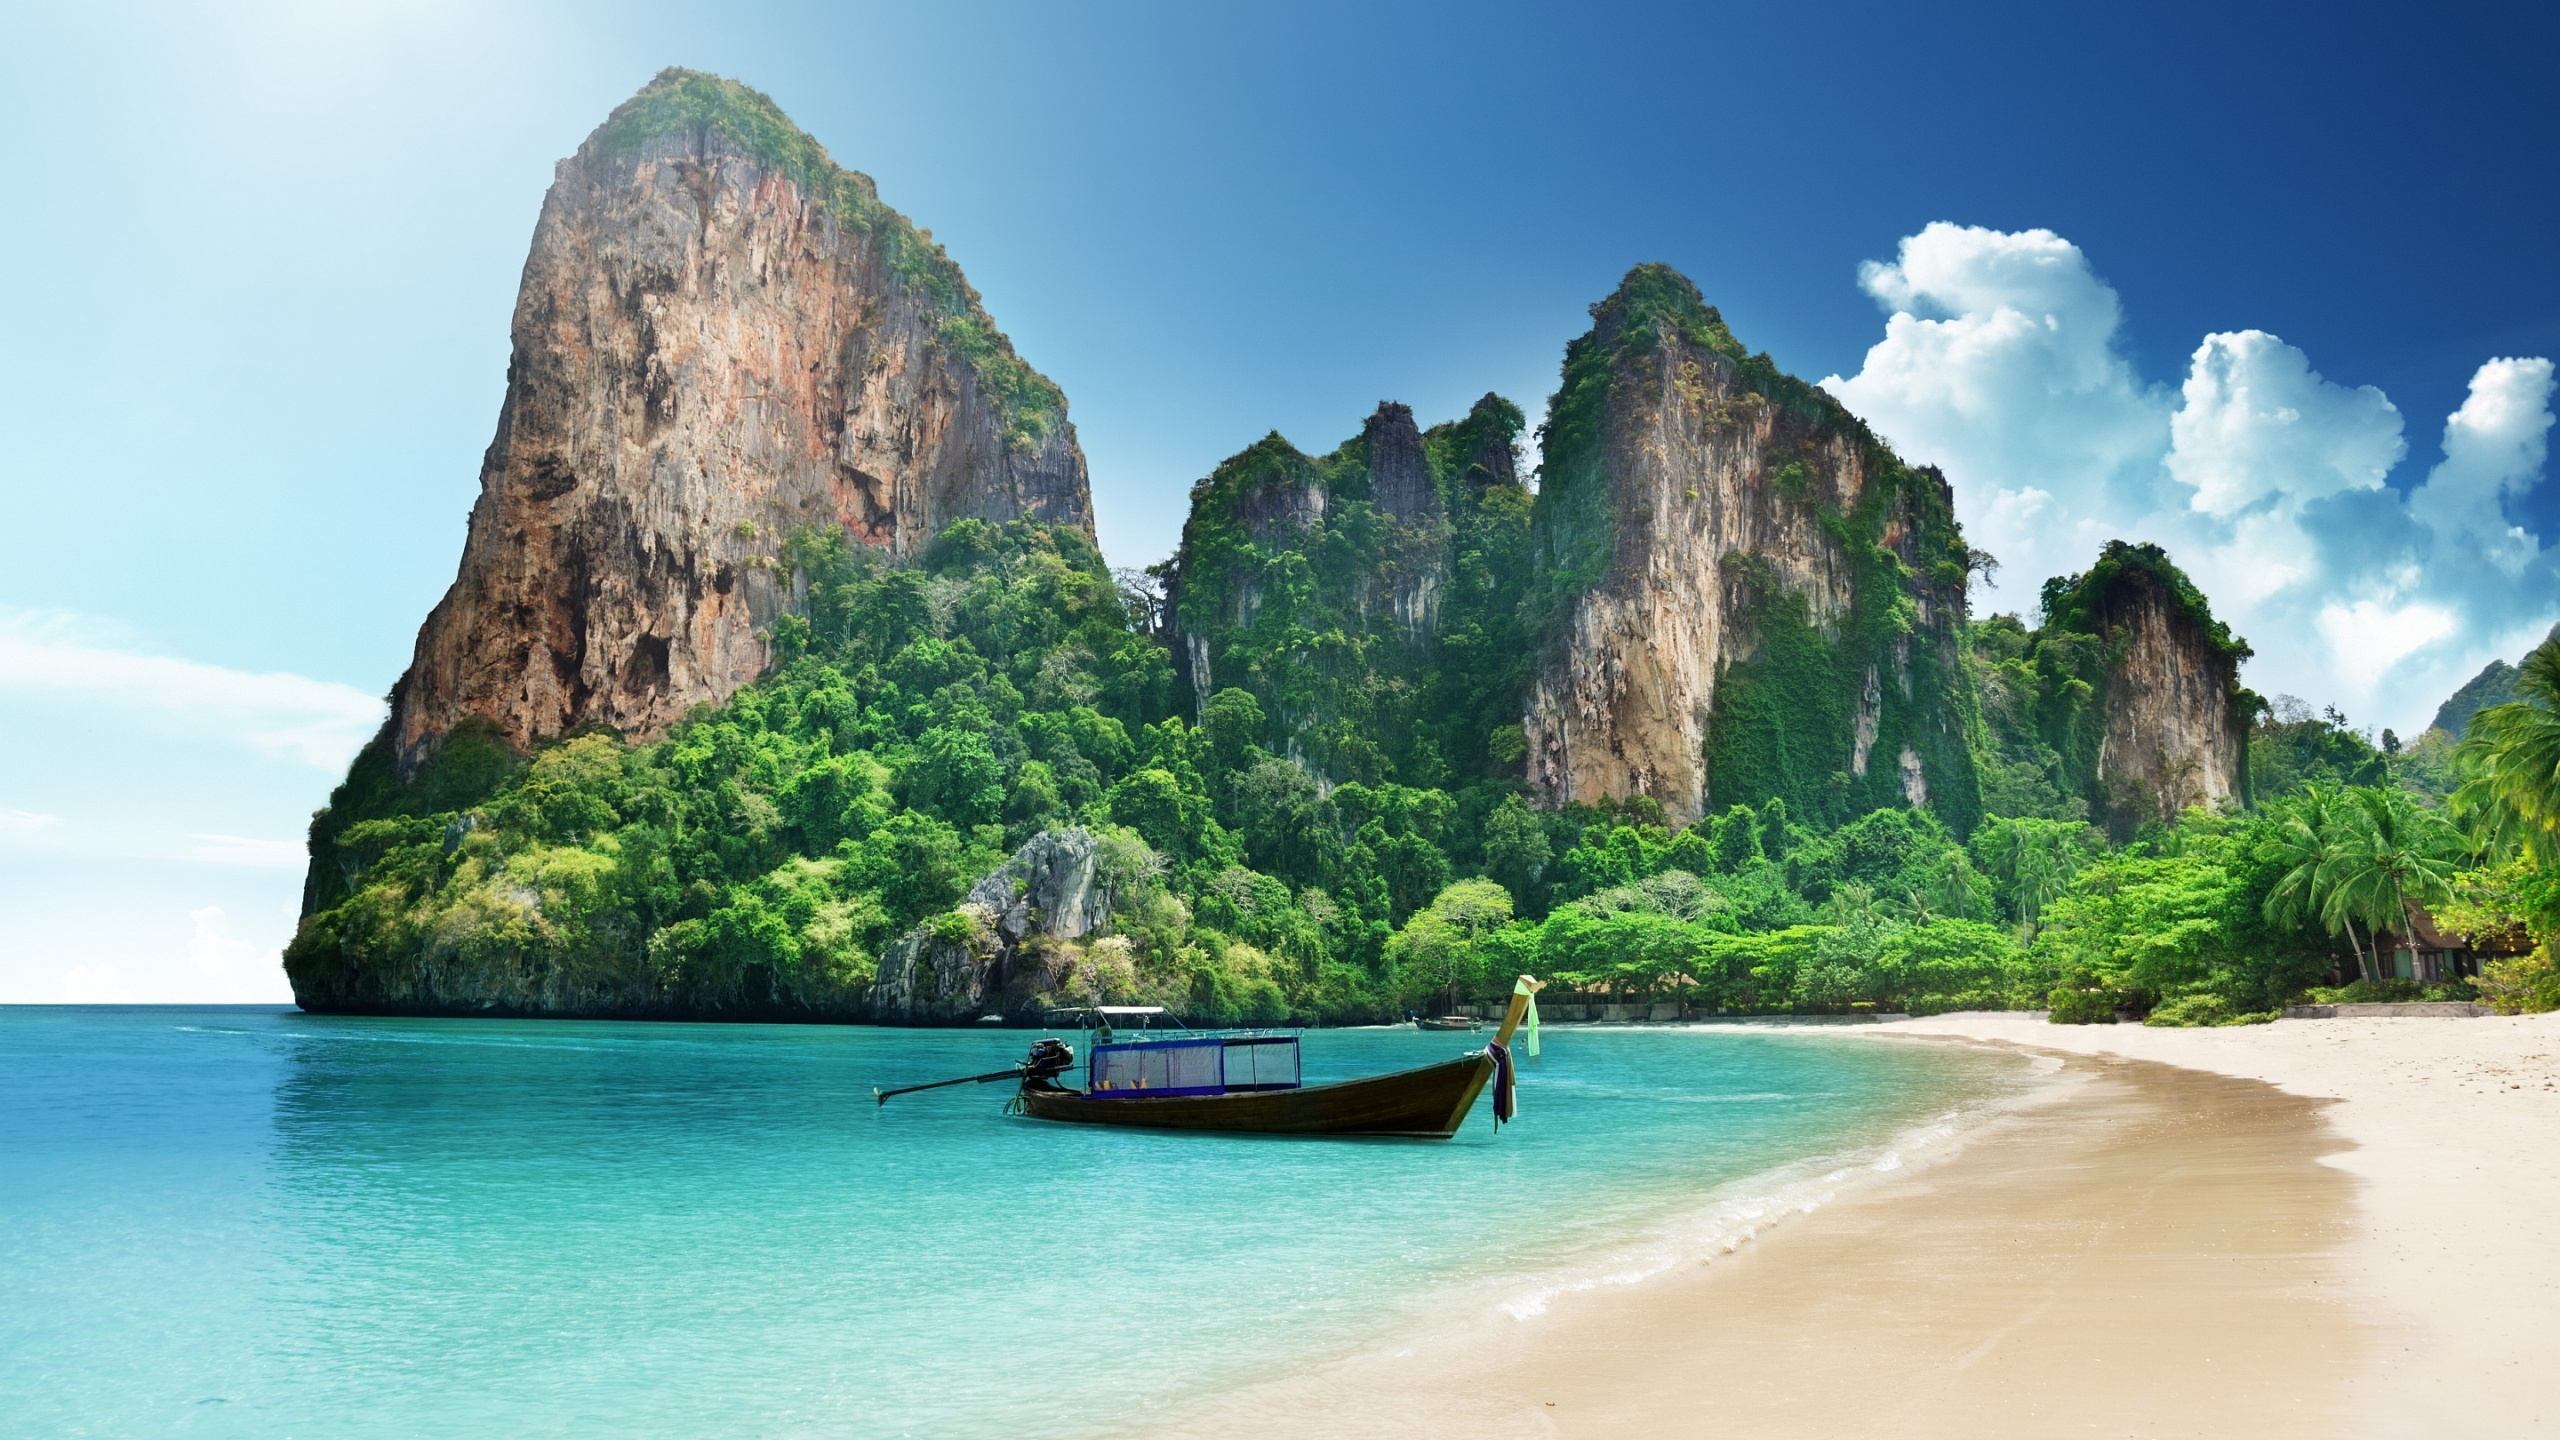 2560x1440 Thai Beach 1440p Resolution Hd 4k Wallpapers Images Backgrounds Photos And Pictures